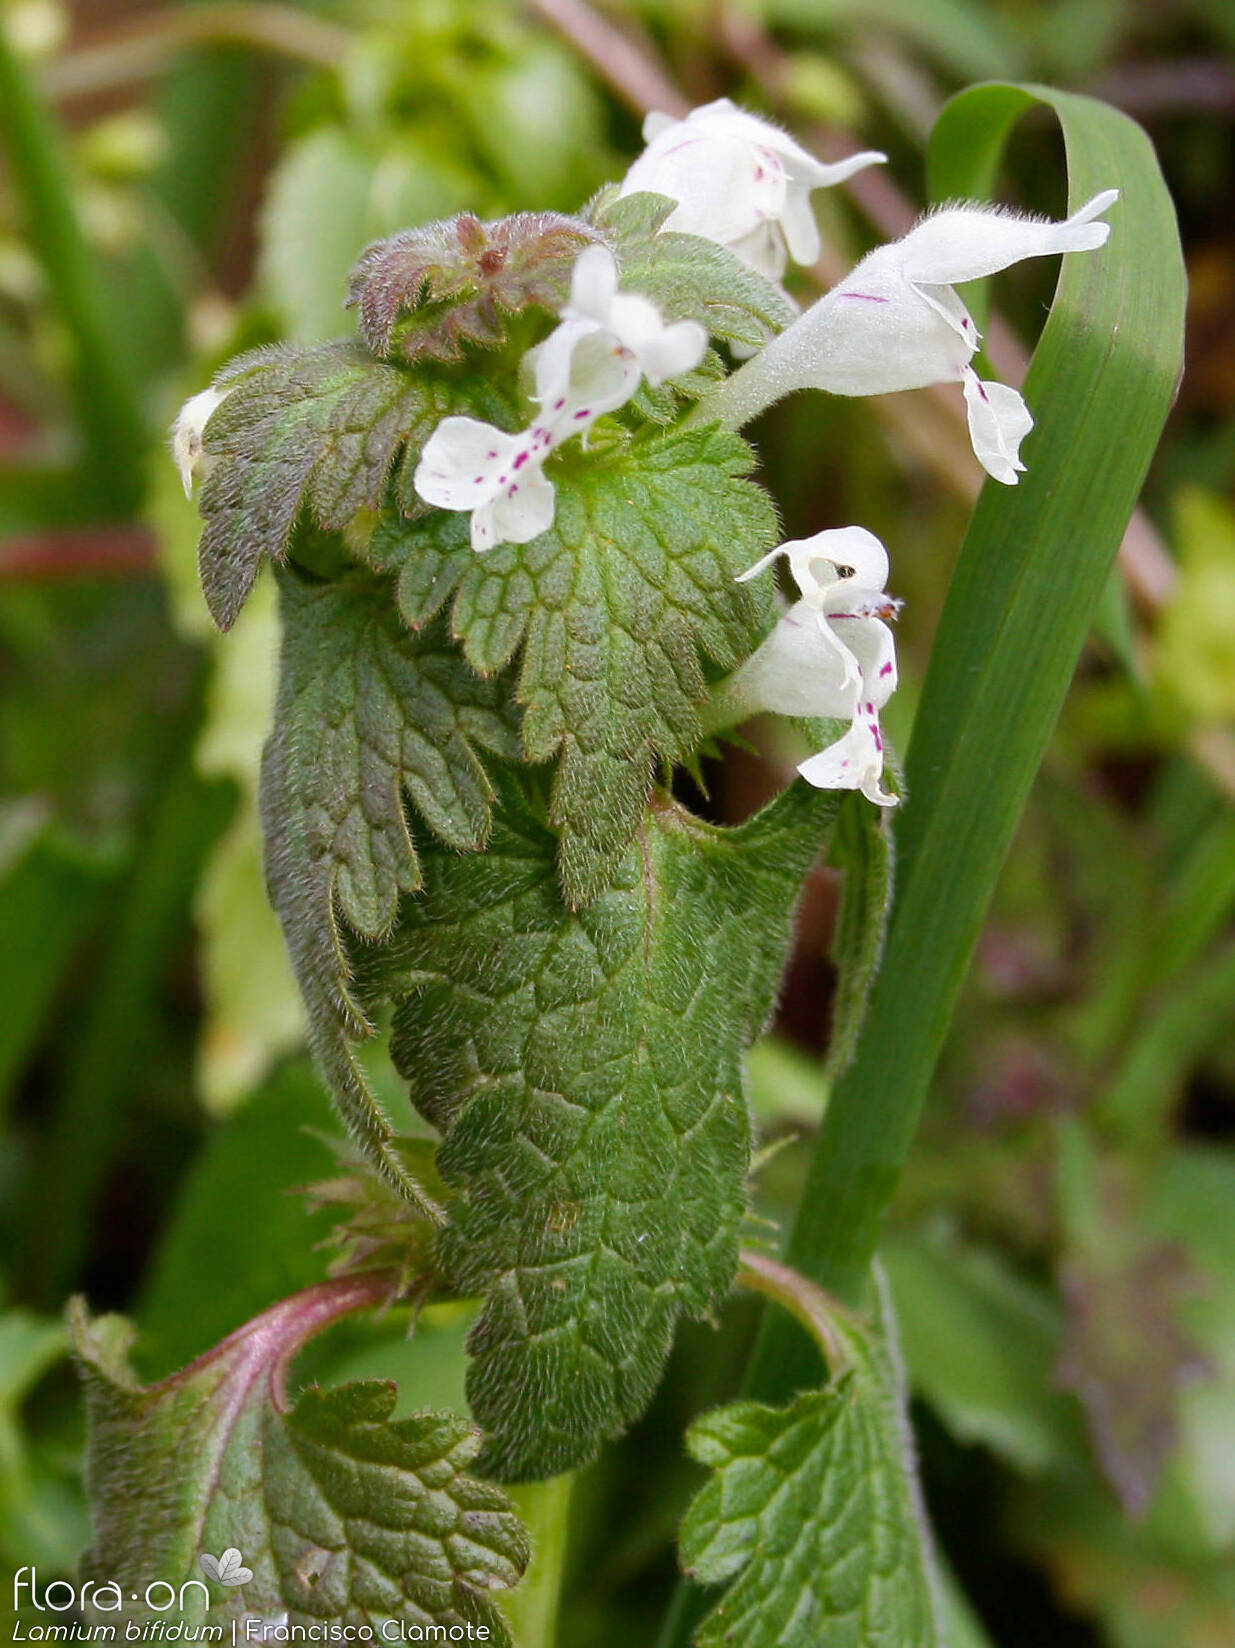 Lamium bifidum - Flor (geral) | Francisco Clamote; CC BY-NC 4.0